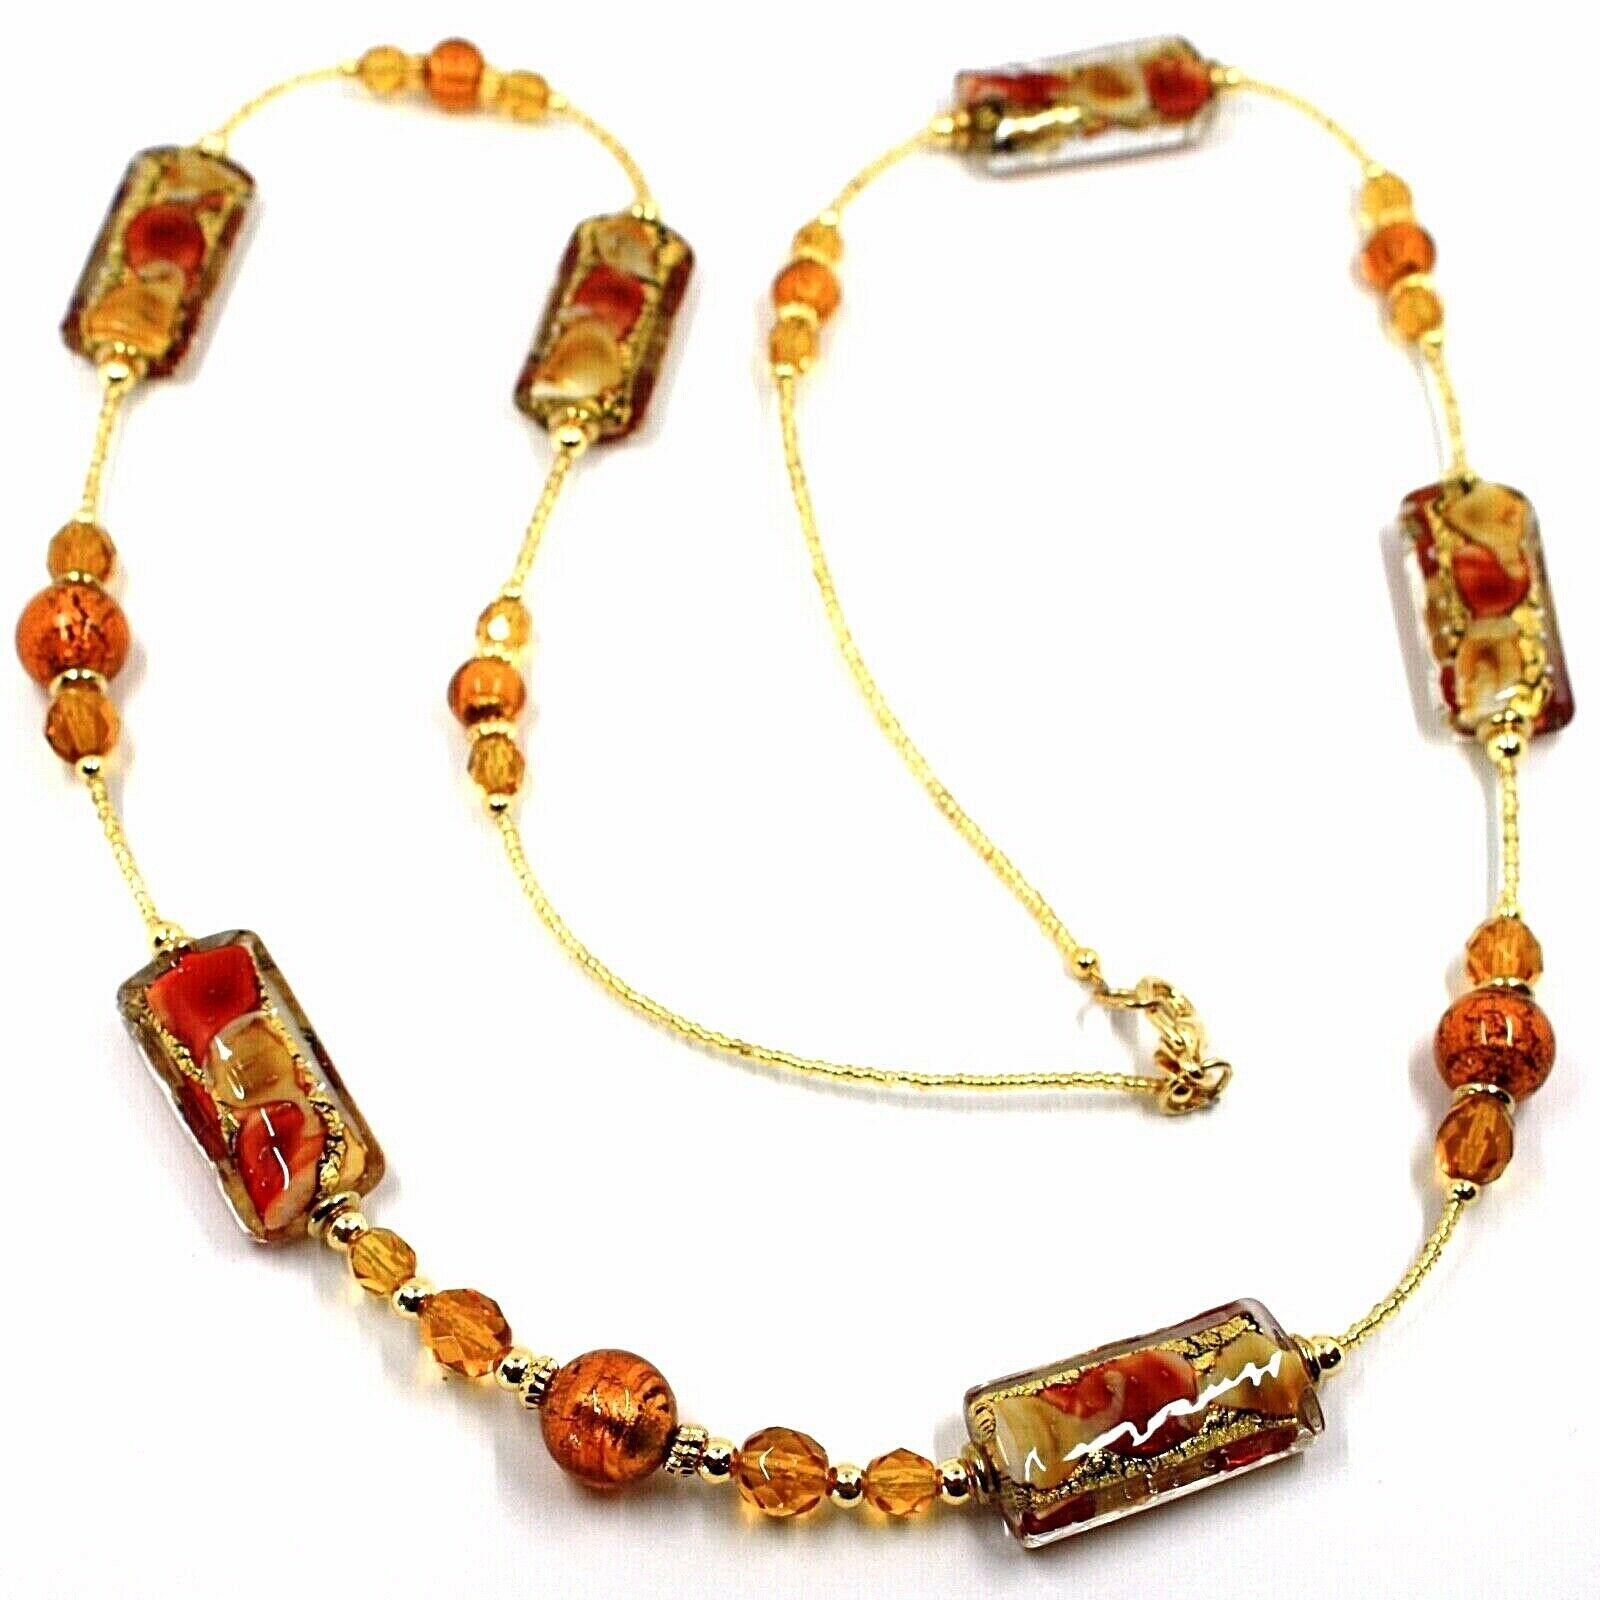 LONG NECKLACE AMBER MURANO GLASS RECTANGLE TUBE, SPHERE, GOLD LEAF, ITALY MADE